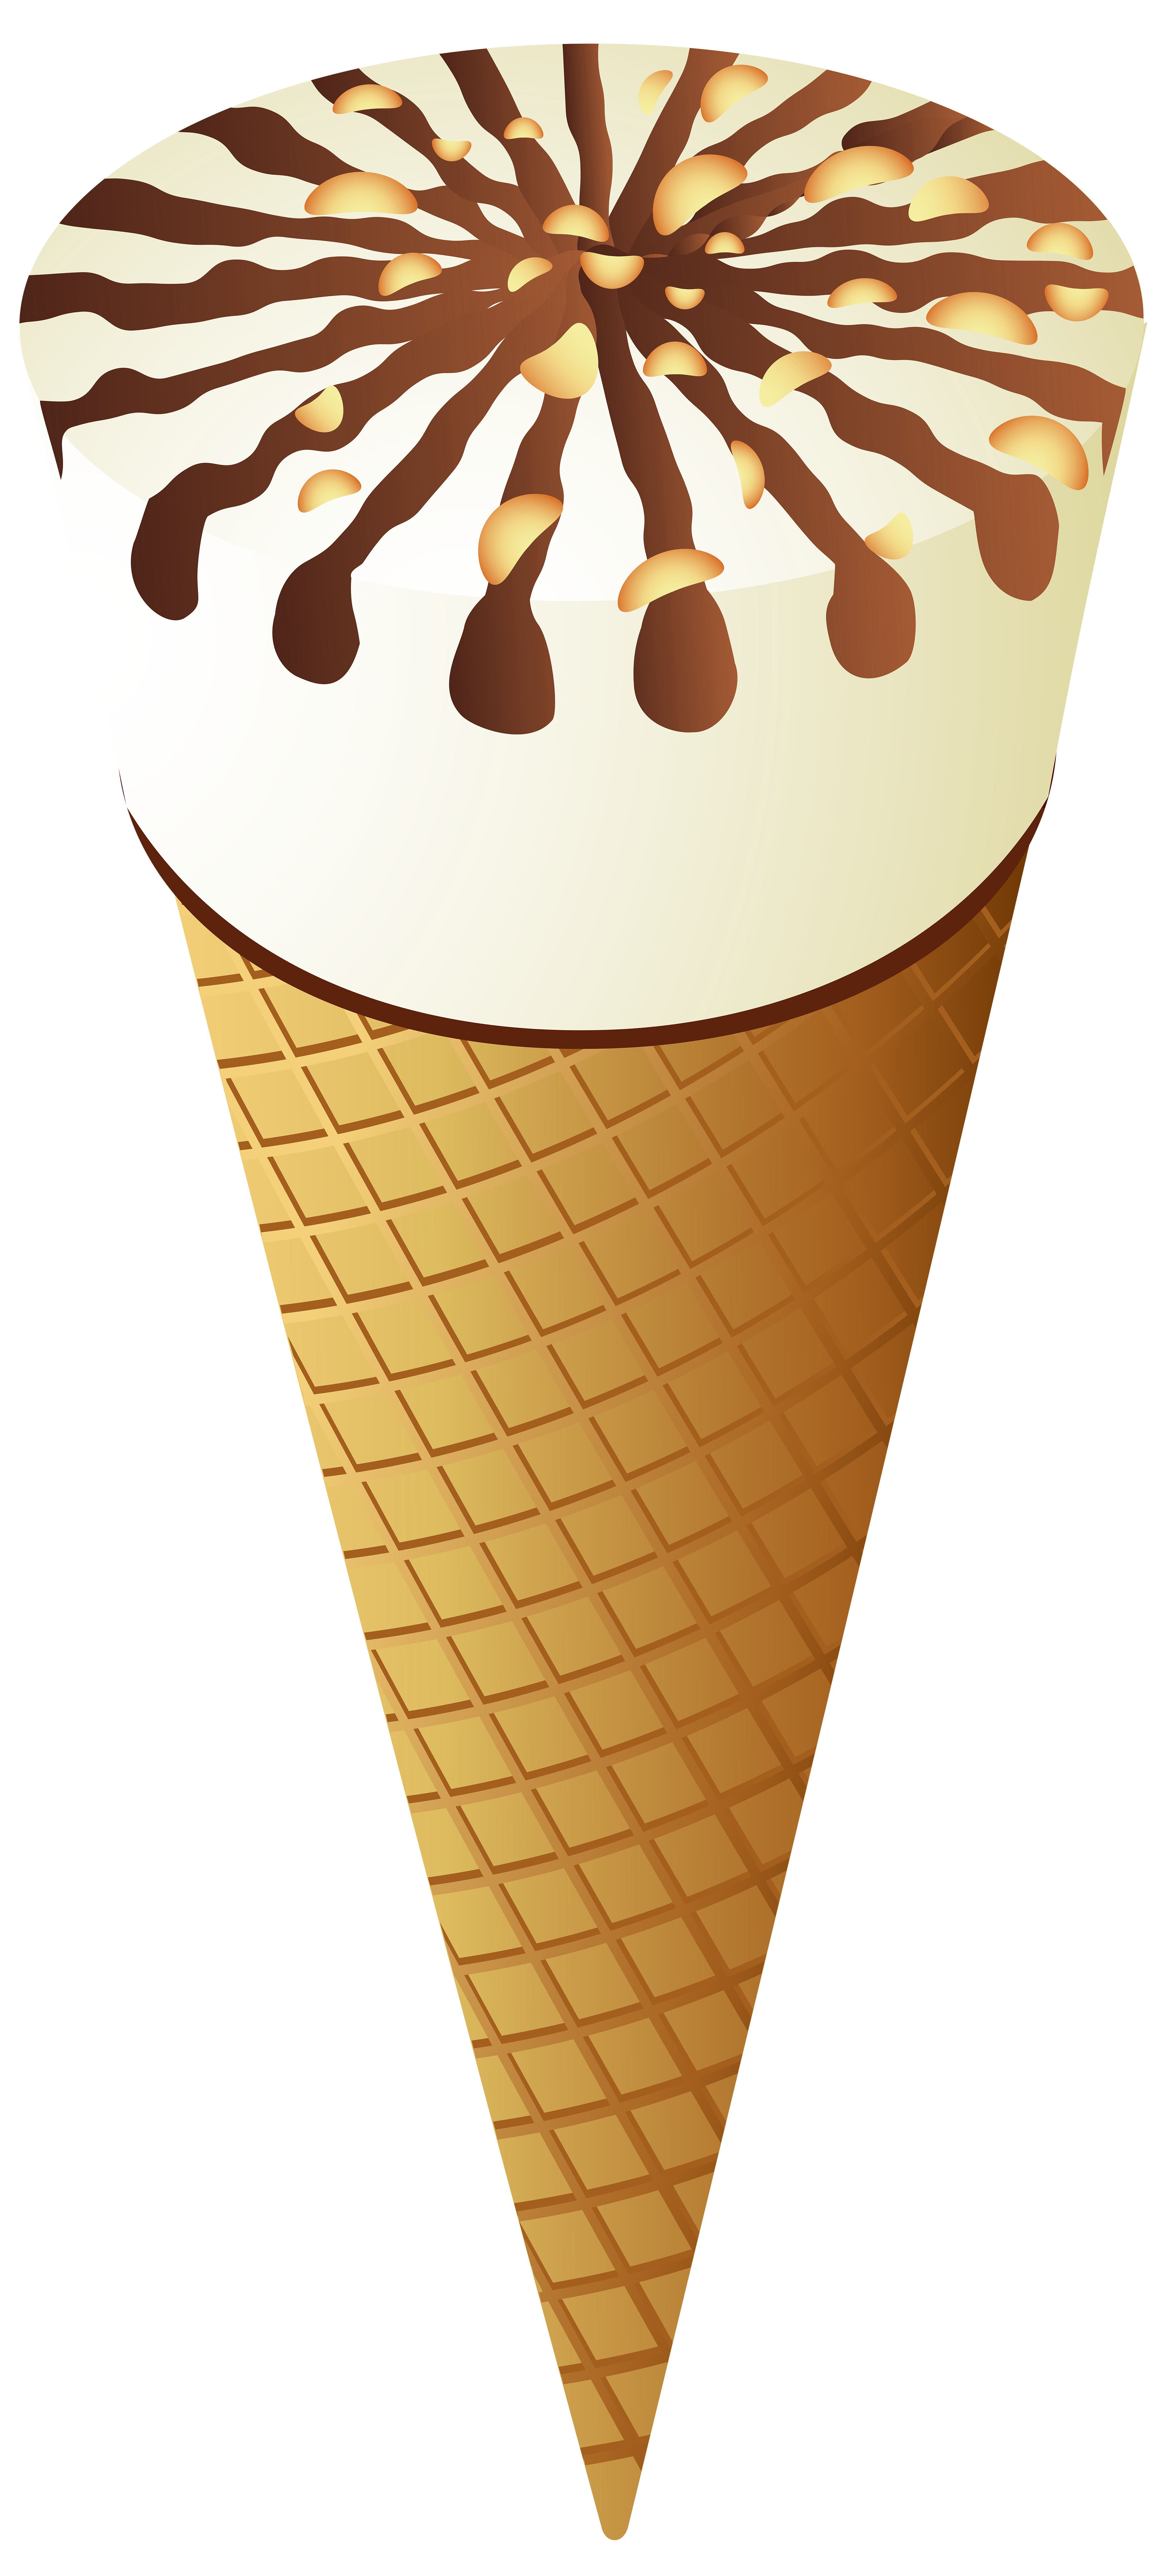 Ice cream cone clip art mktc.